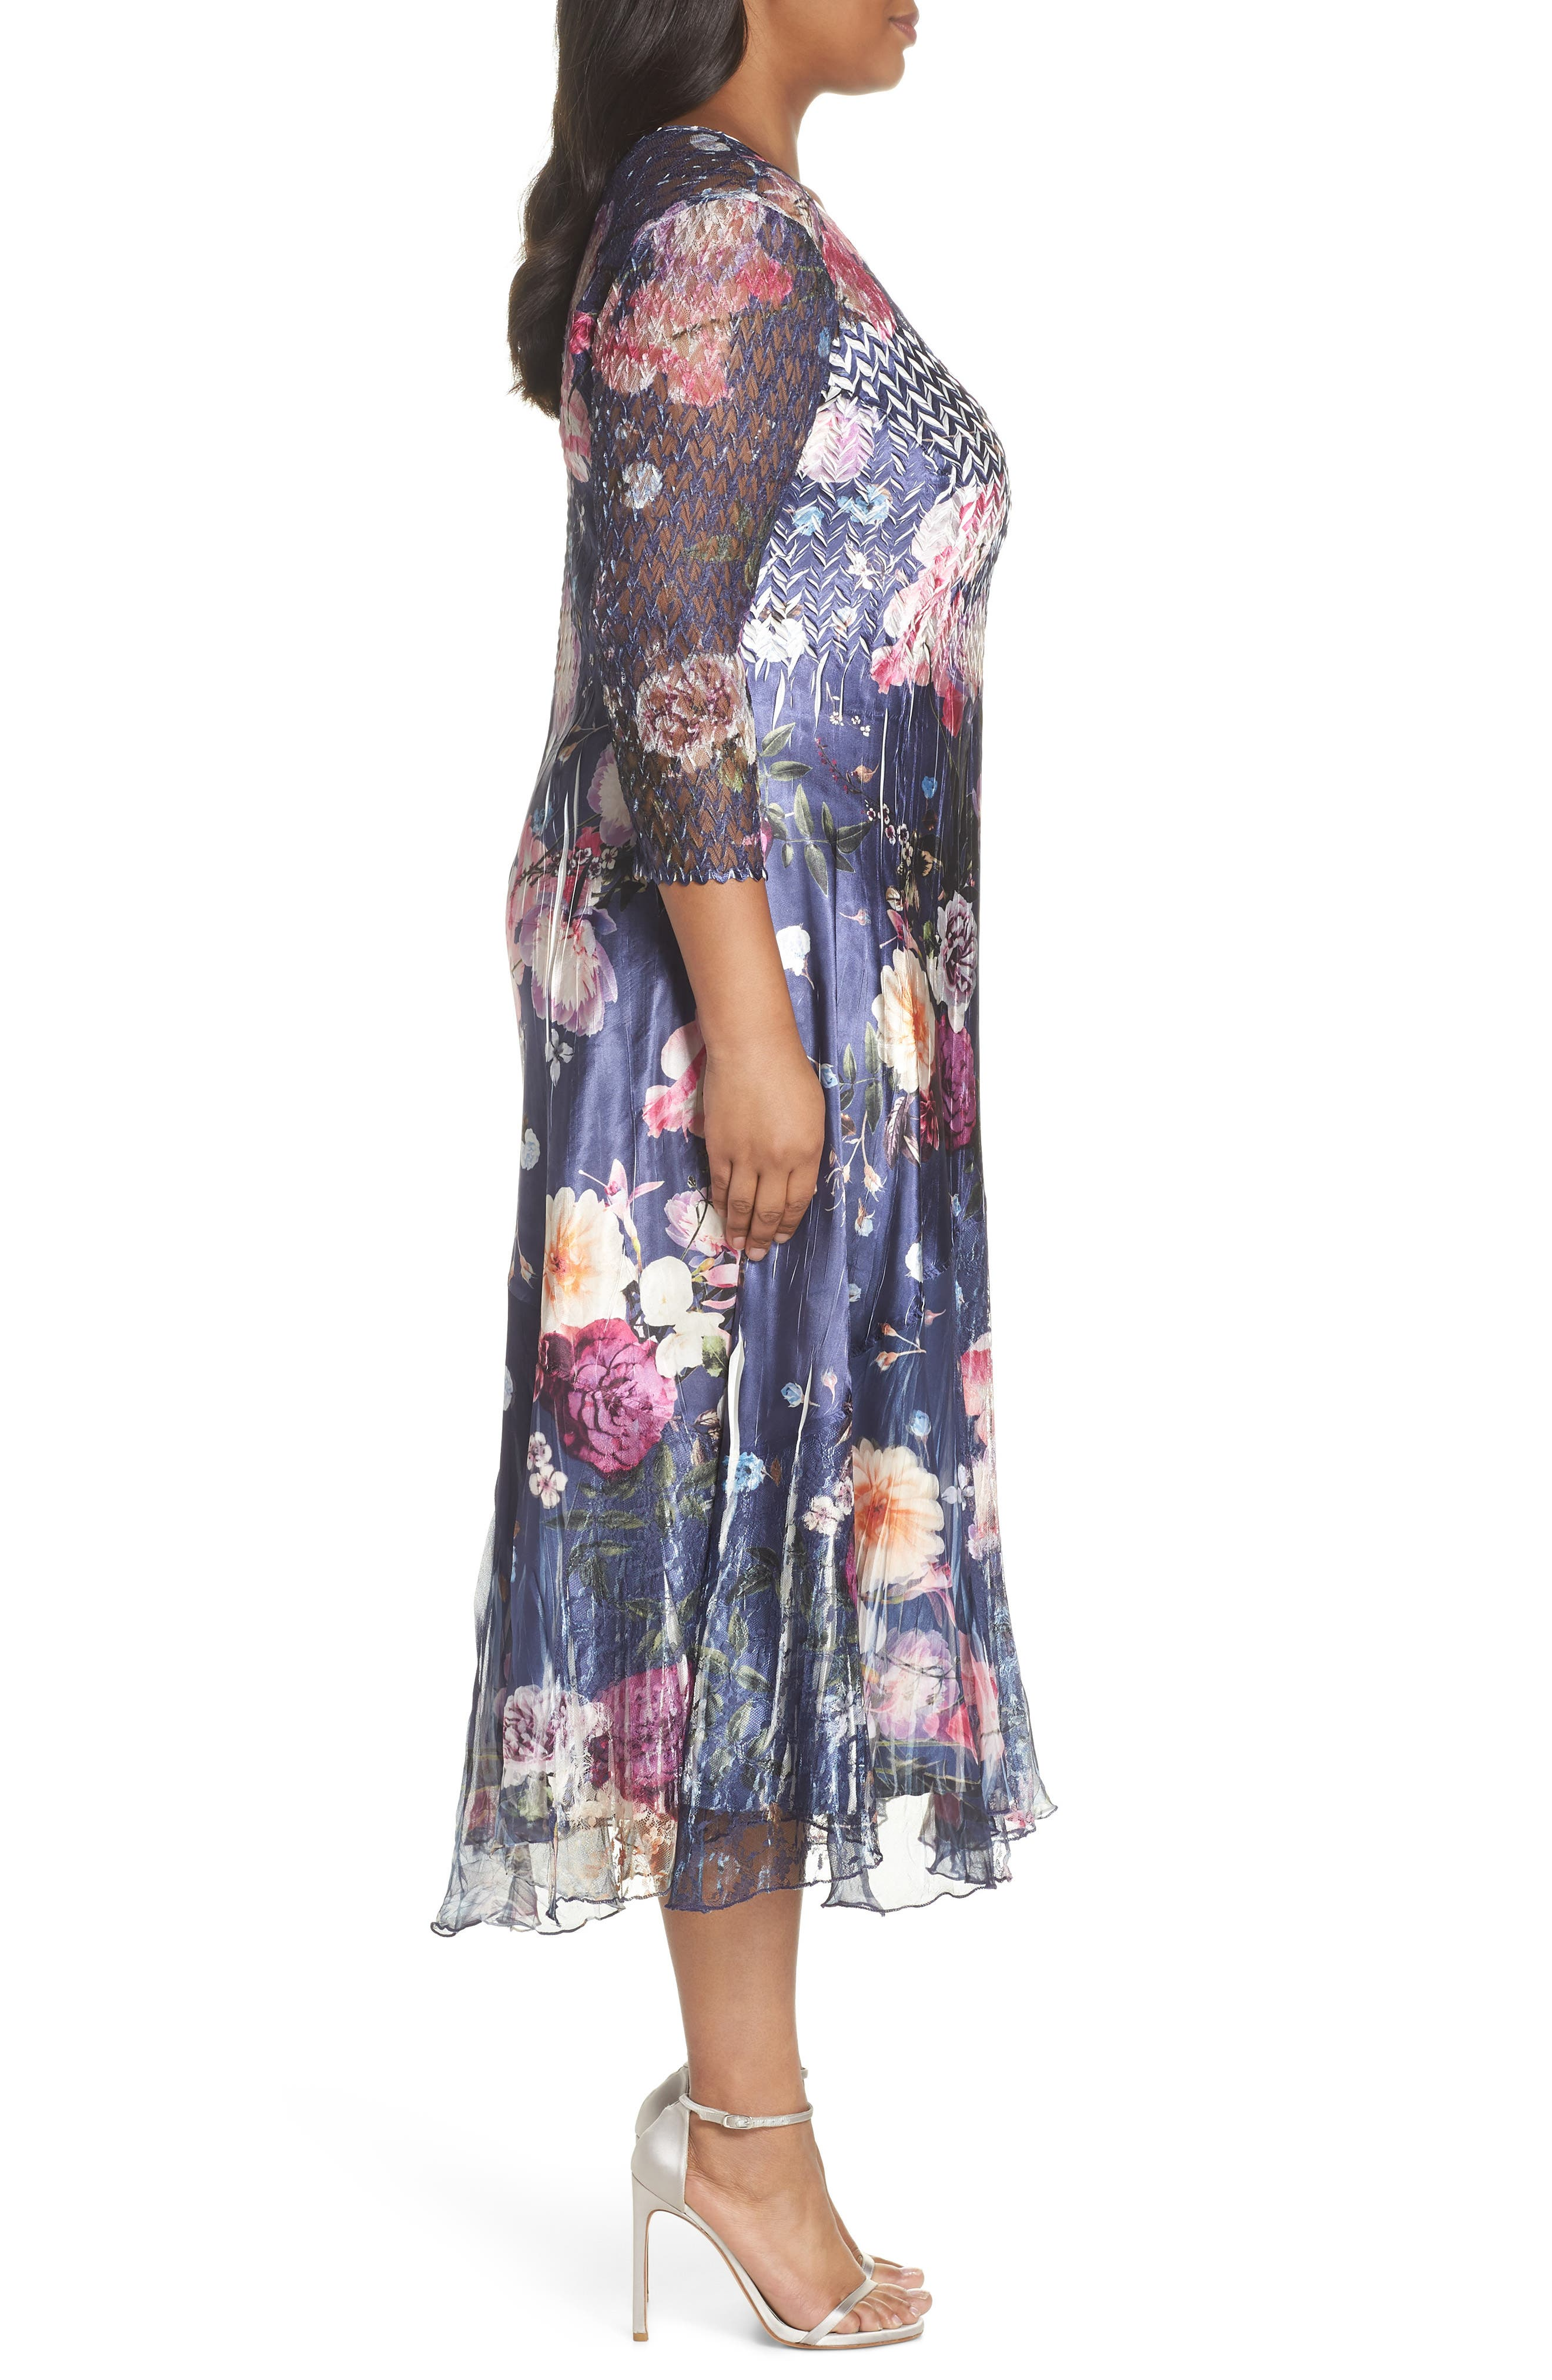 Koramov Floral Print Lace Inset Dress,                             Alternate thumbnail 3, color,                             Velvet Bouquet